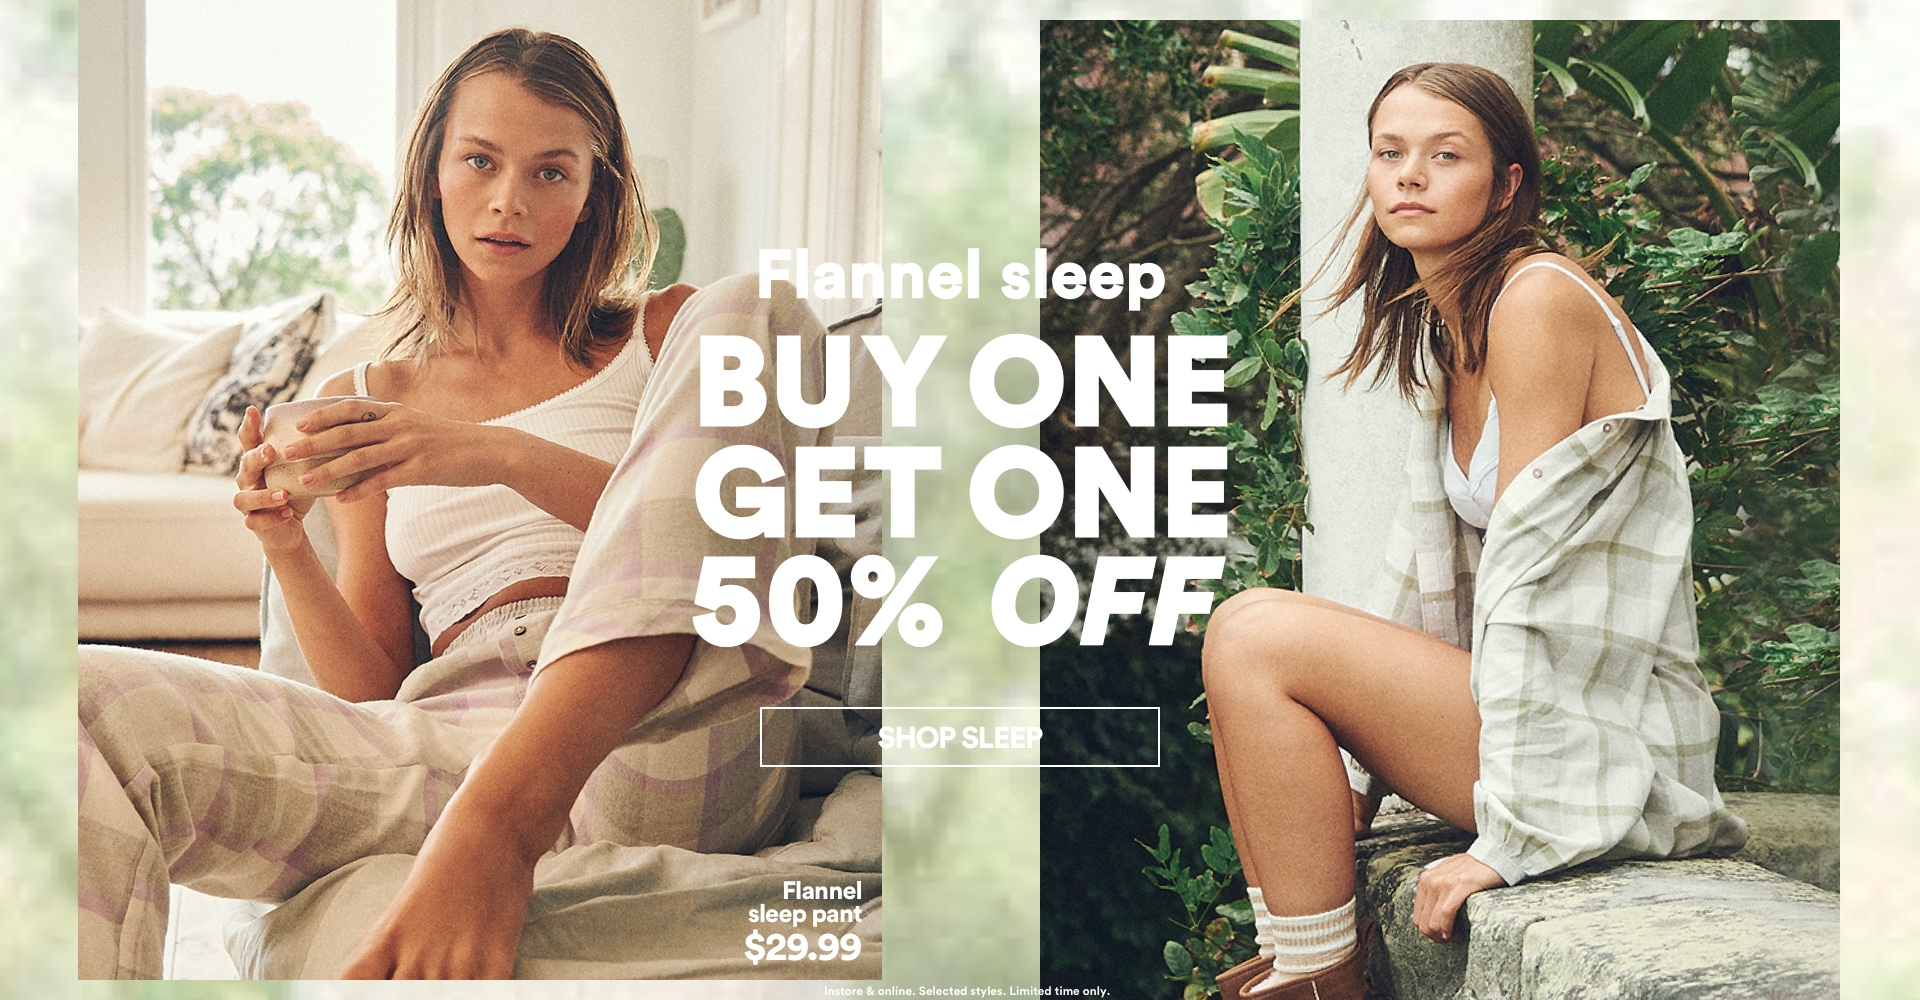 Flannel Sleep: Buy one, get one 50% off. Shop Now.